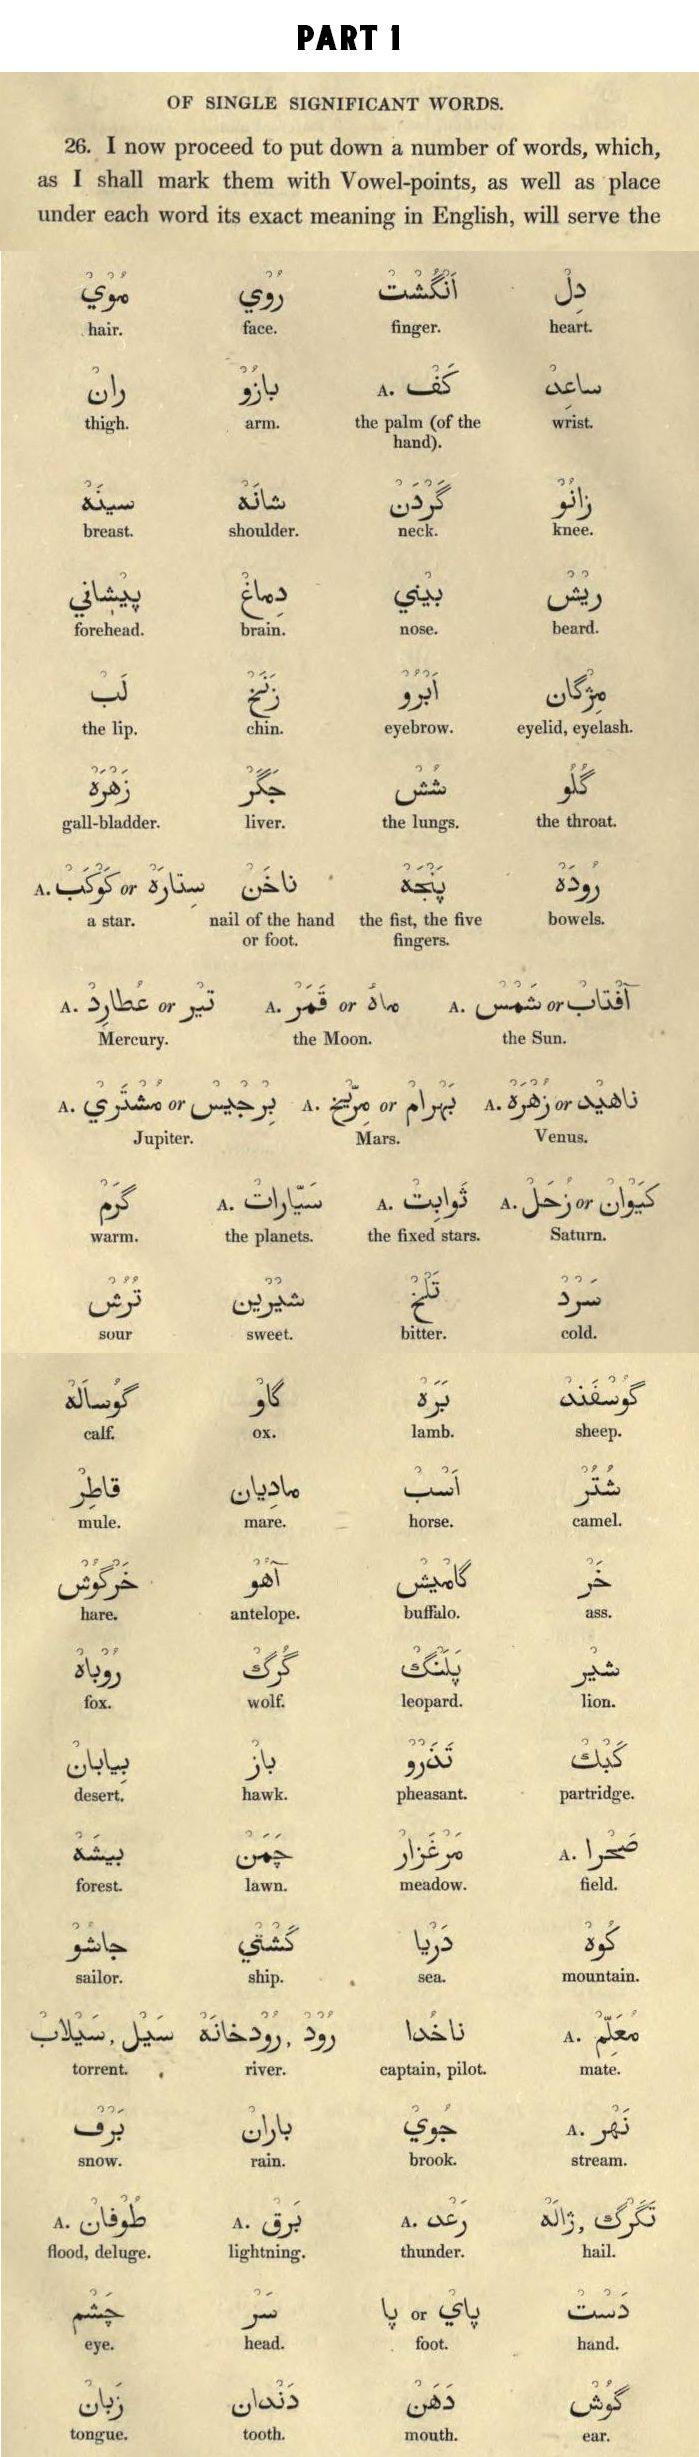 "Part 1 of Significant Words, From ""A grammar of the Persian language. To which are subjoined several dialogues; with an alphabetical list of the English and Persian terms of grammar, and an appendix on the use of Arabic words"""